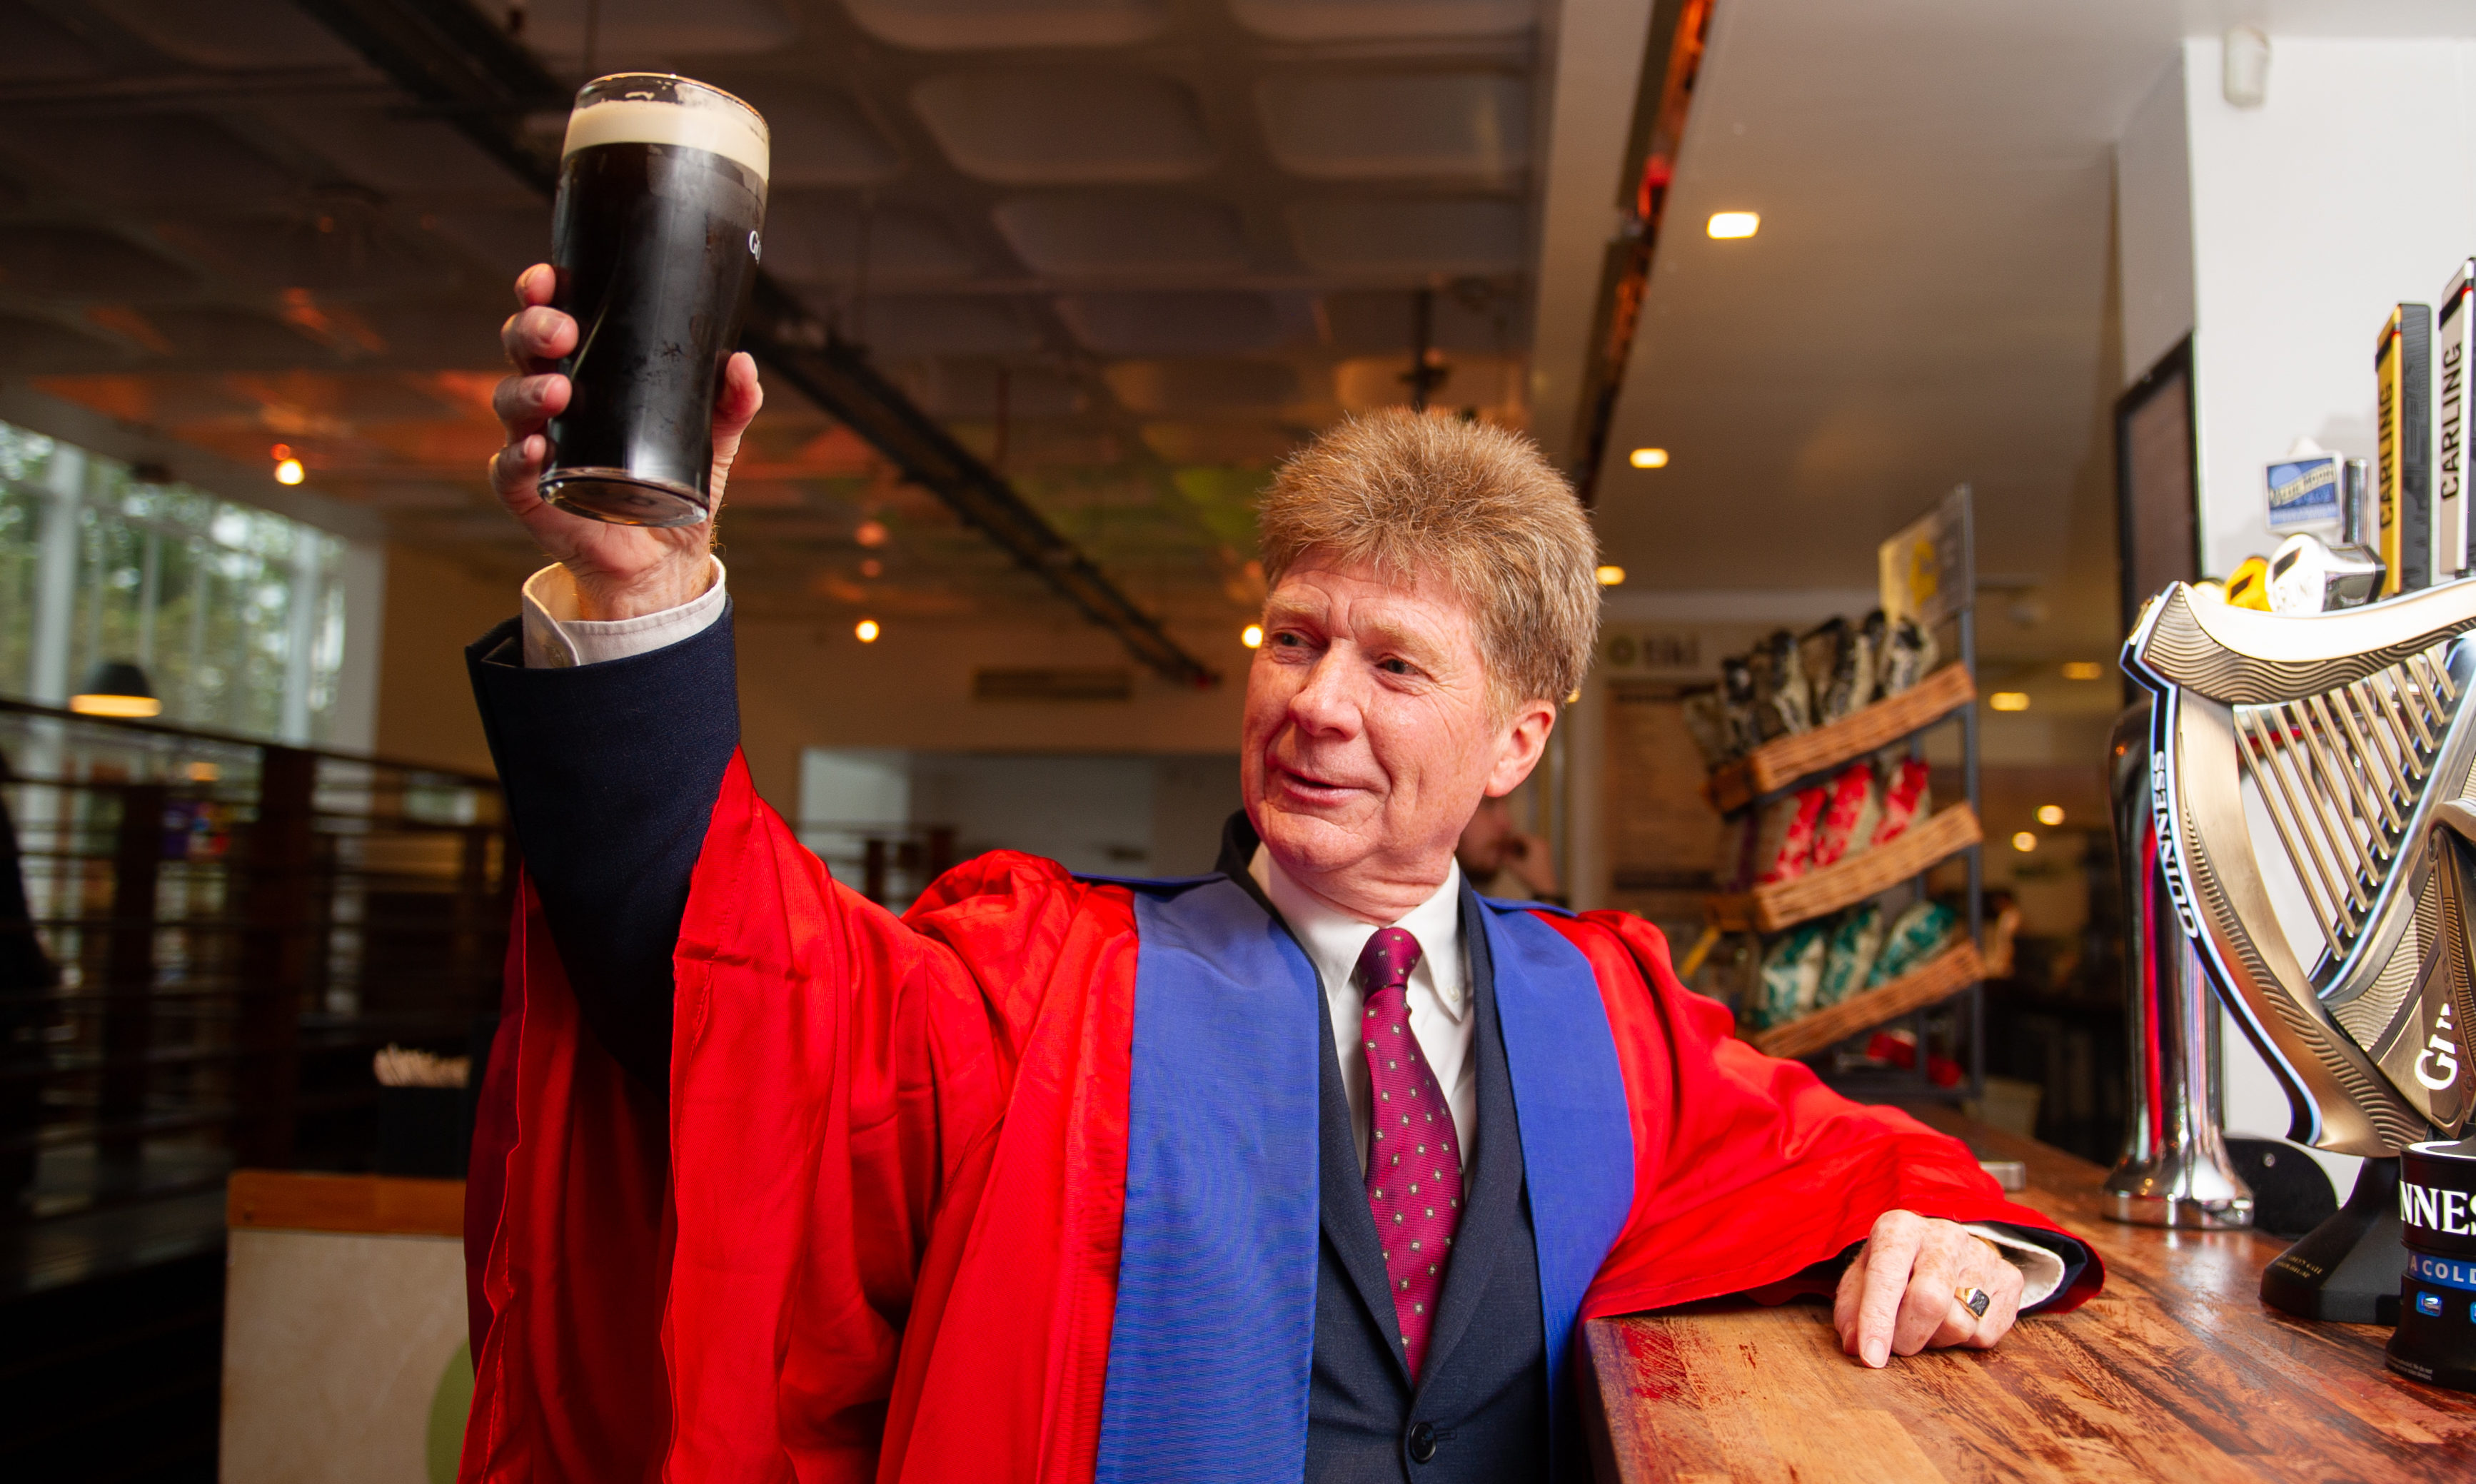 Jim Spence with his first pint of traditional 'drag'.